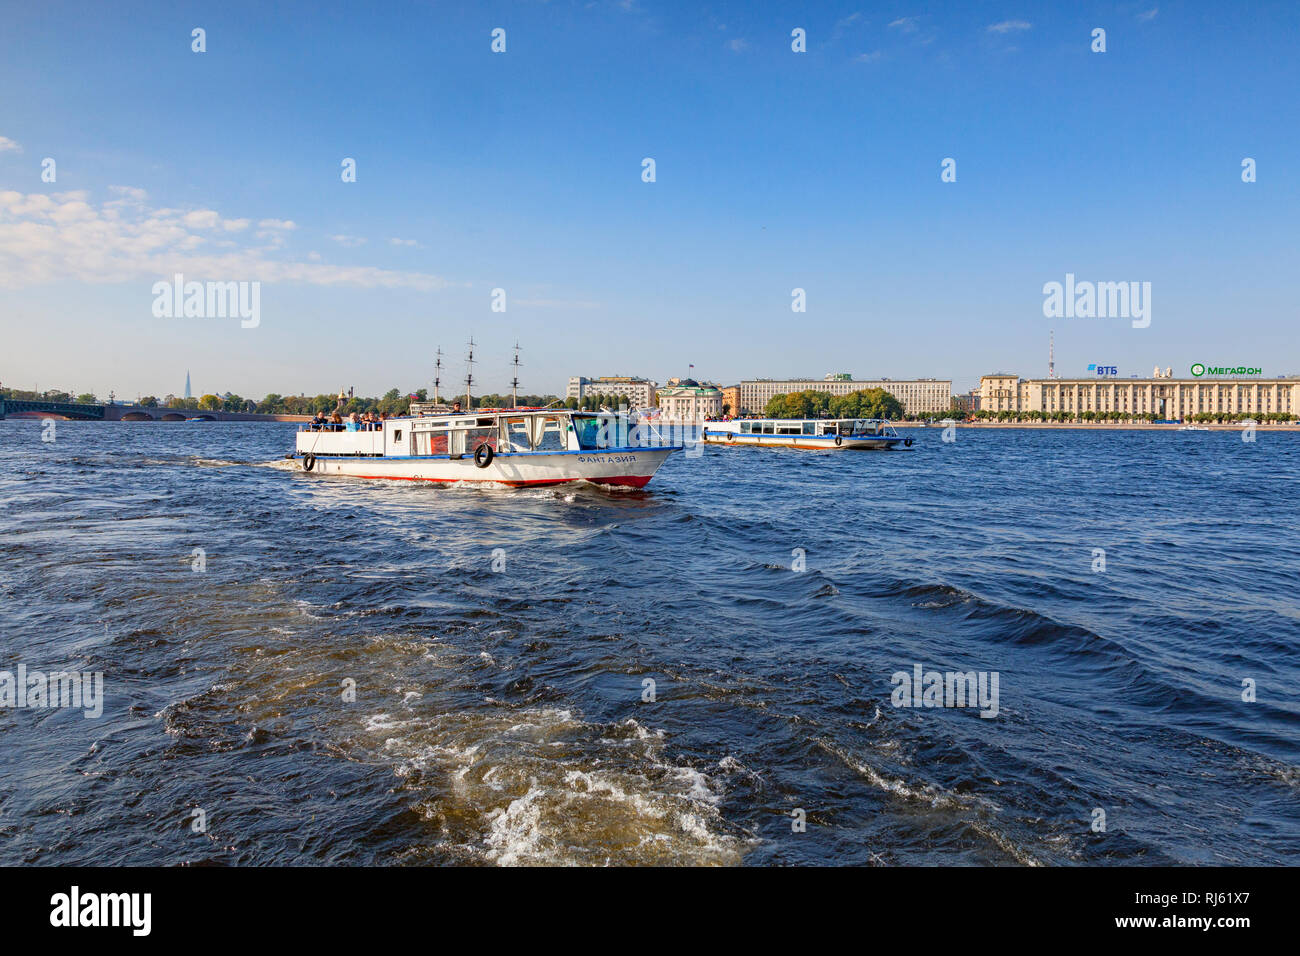 19 September 2018: St Petersburg, Russia - Tourist boats on the River Neva, on a bright and sunny autumn day. - Stock Image